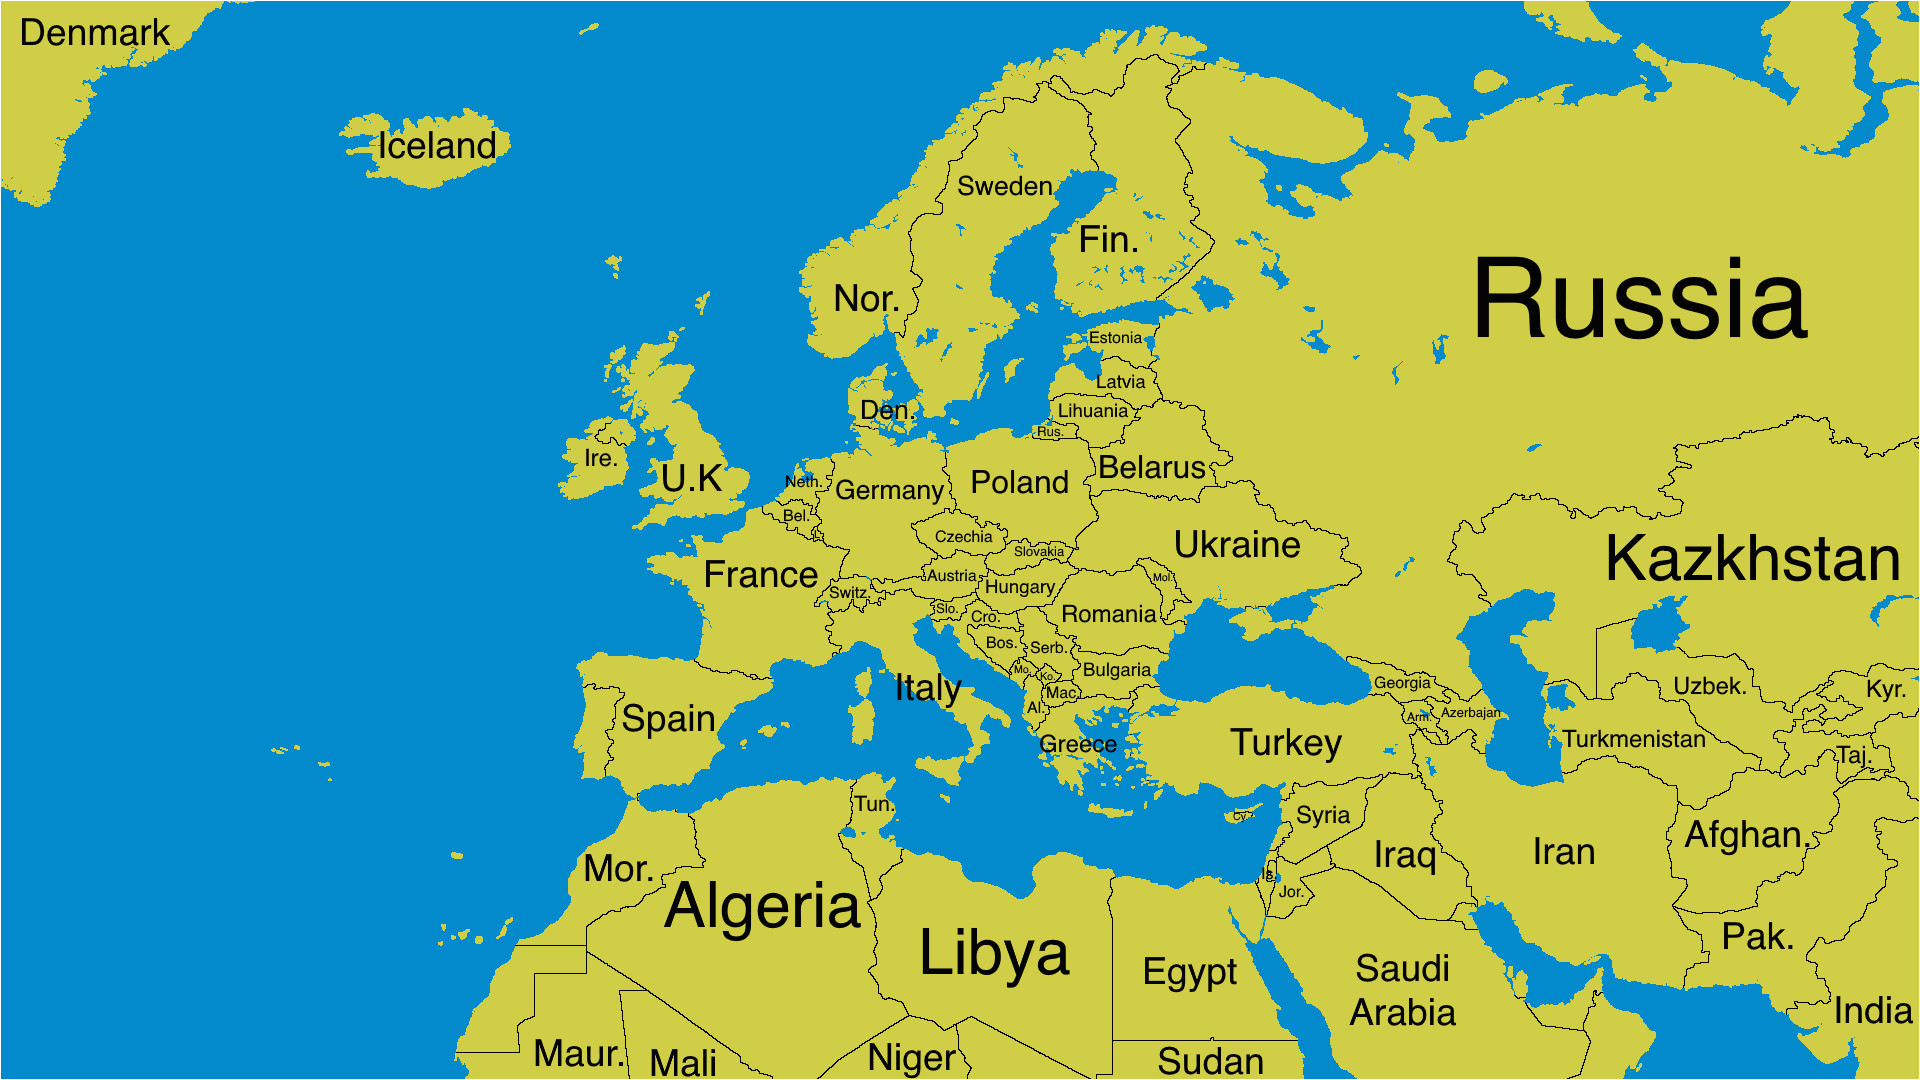 Map Of Europe Showing Italy.Map Of Europe Showing Italy Maps For Mappers Thefutureofeuropes Wiki